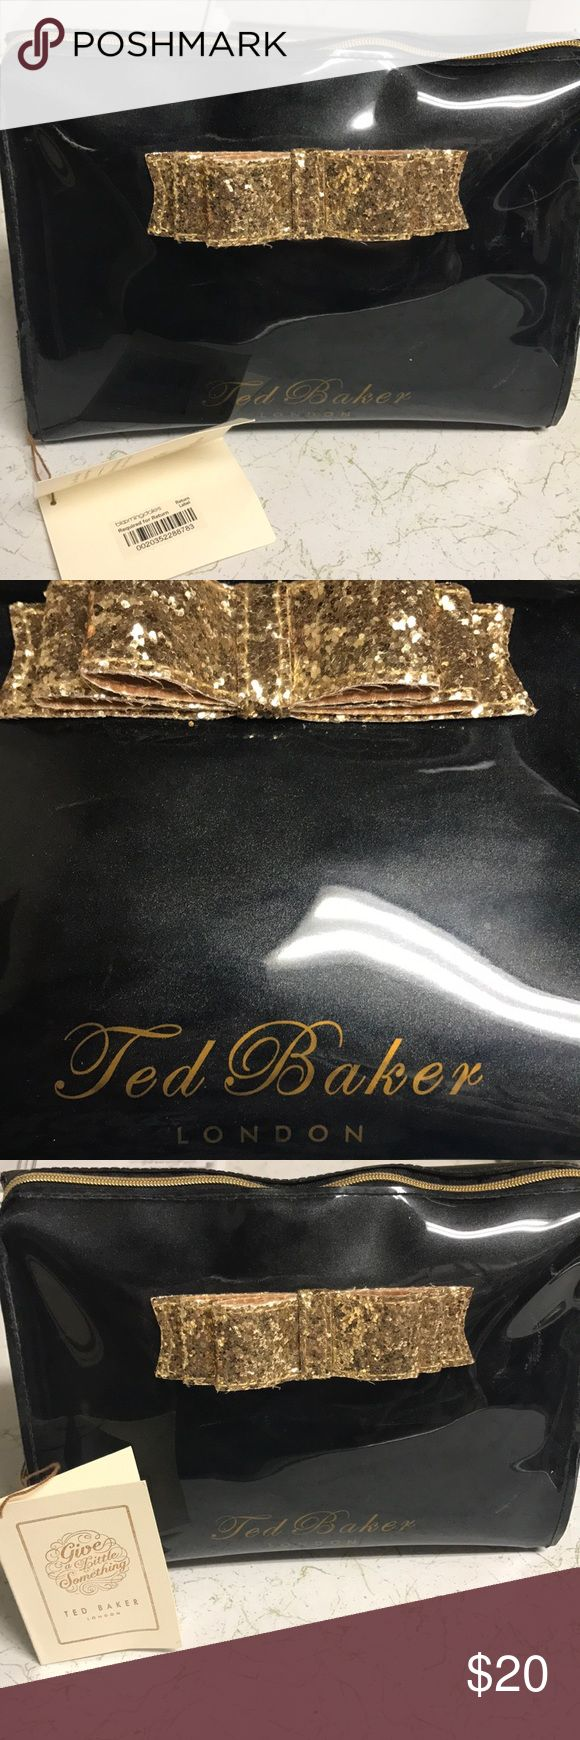 Ted Baker Glitter Bow Bag Small shiny cute with sparkle bow... can be a cosmetic bag or clutch. Never worn with tags Baker by Ted Baker Bags Mini Bags